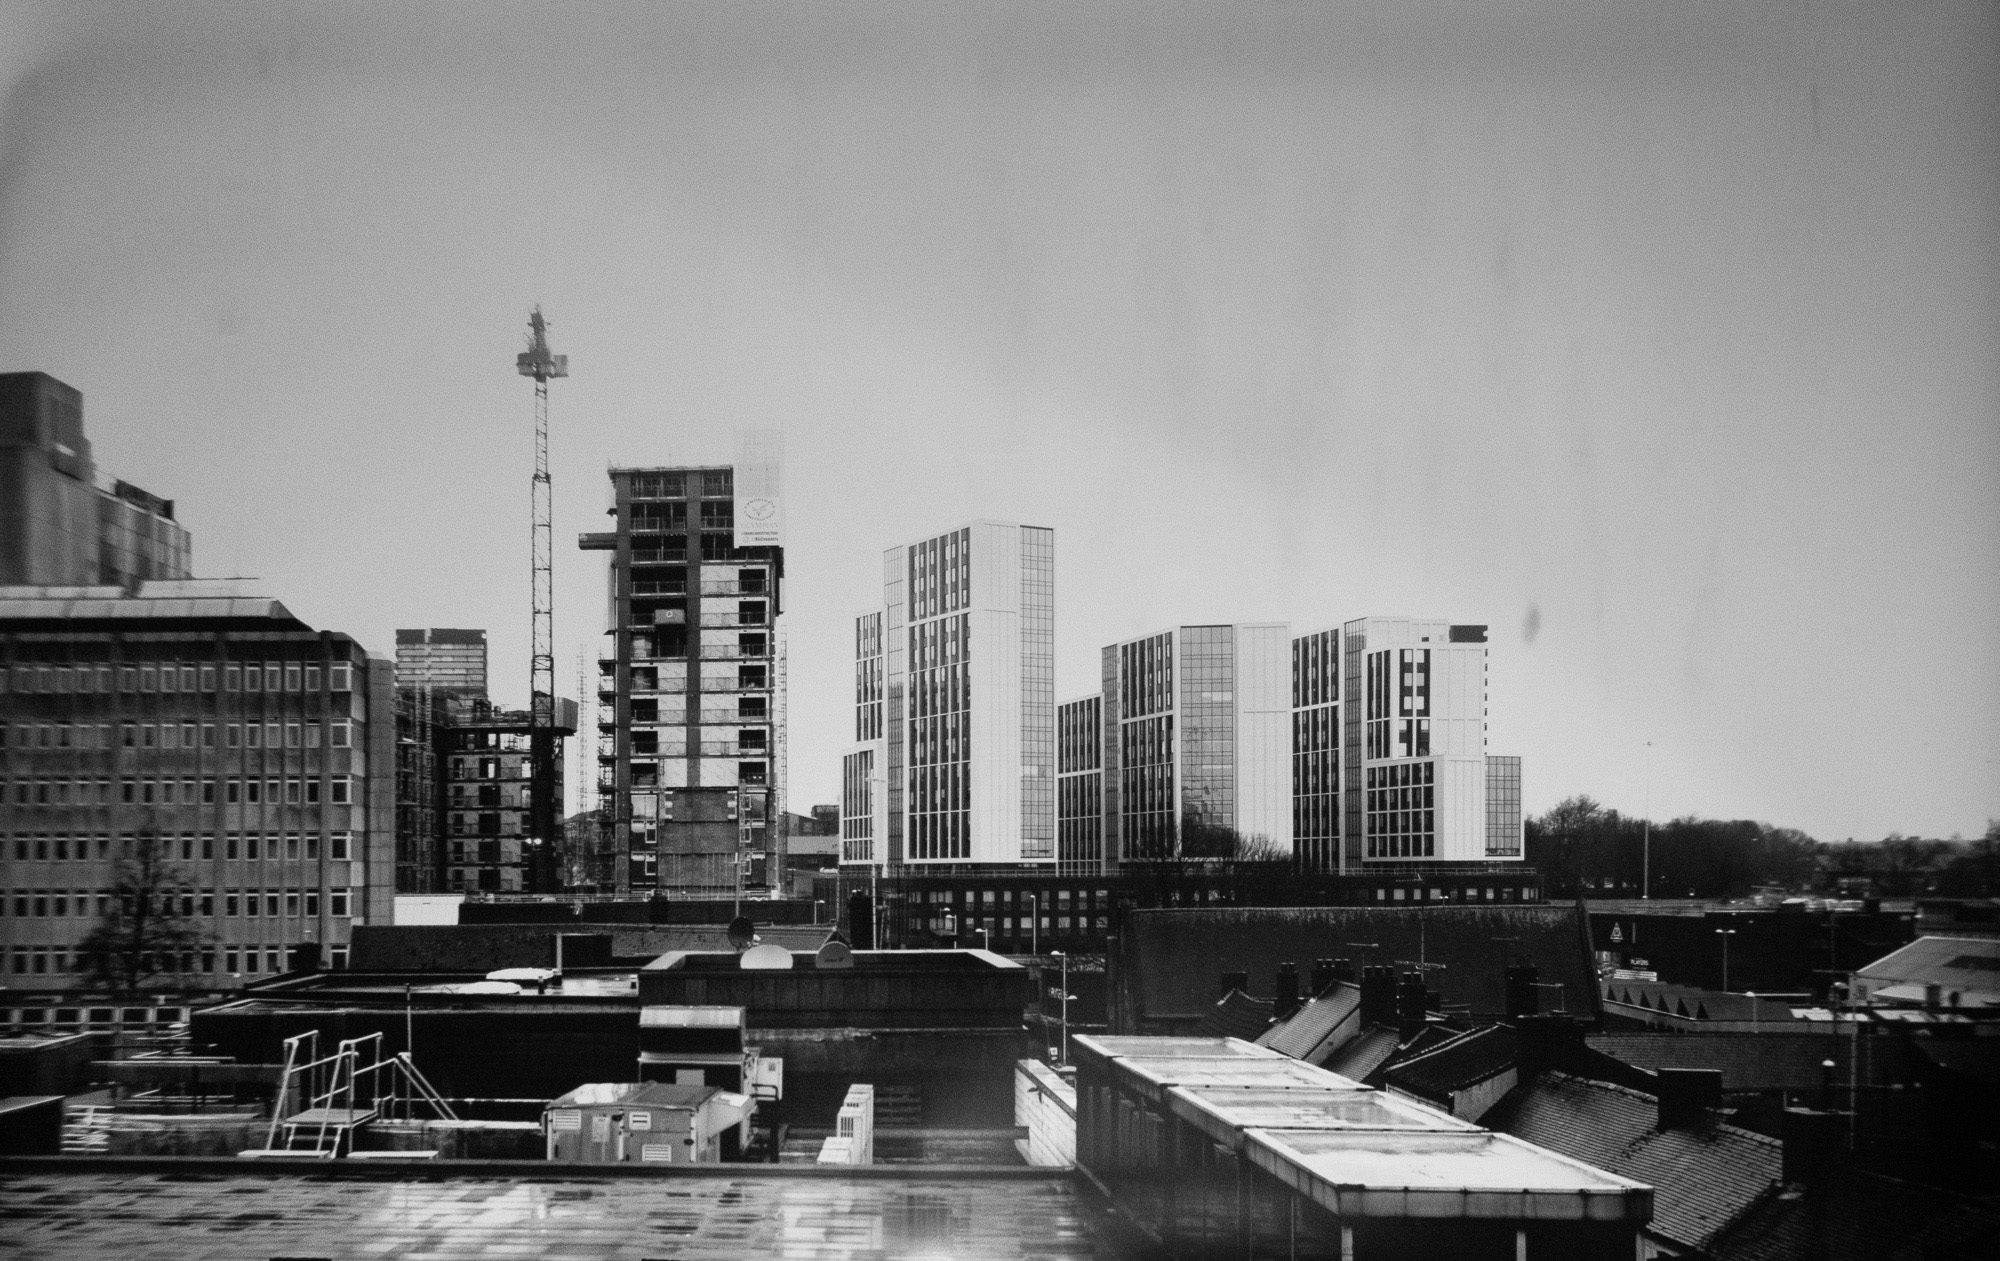 Evolution of a city - Ilford MGRC Paper negative + contact print 3ft x 4ft  - Camera Obscura in 'The Row' Coventry